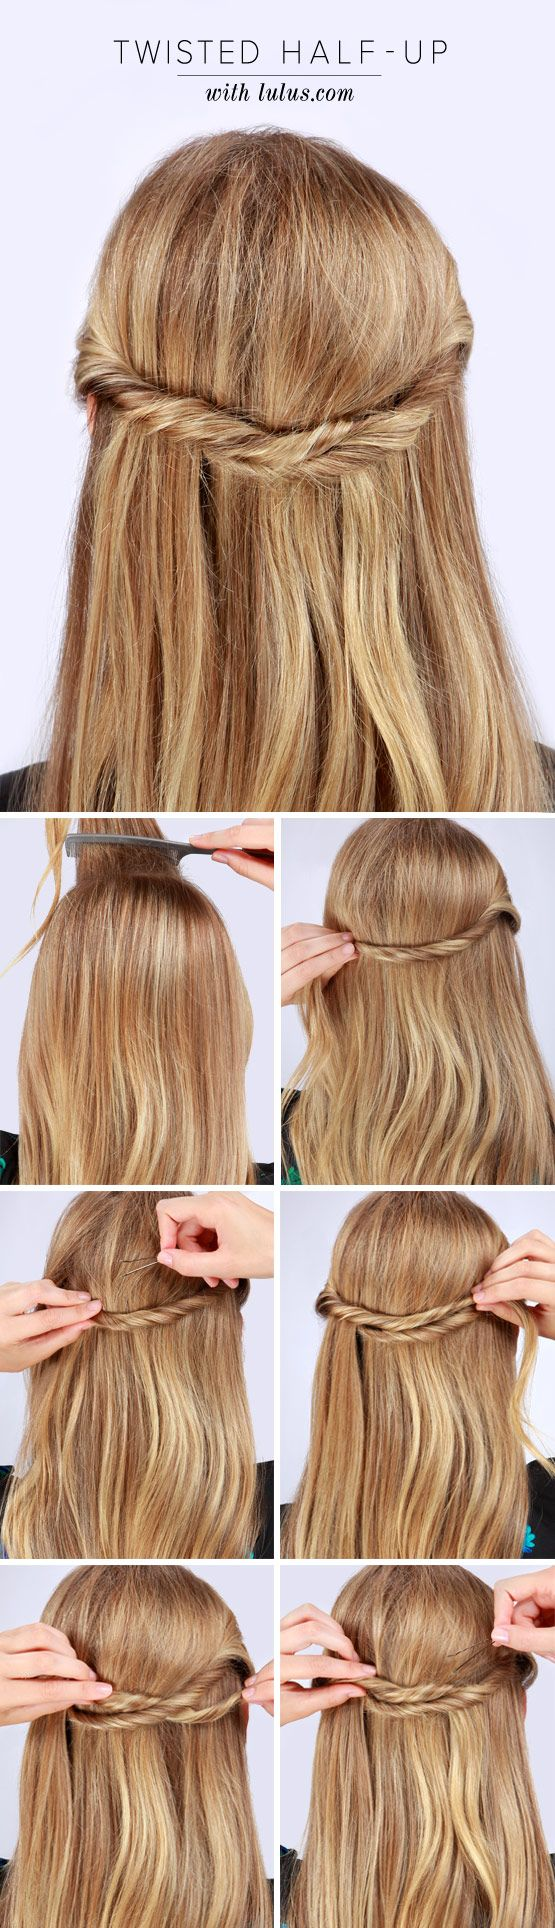 Twisted Half-up Hair Tutorial: